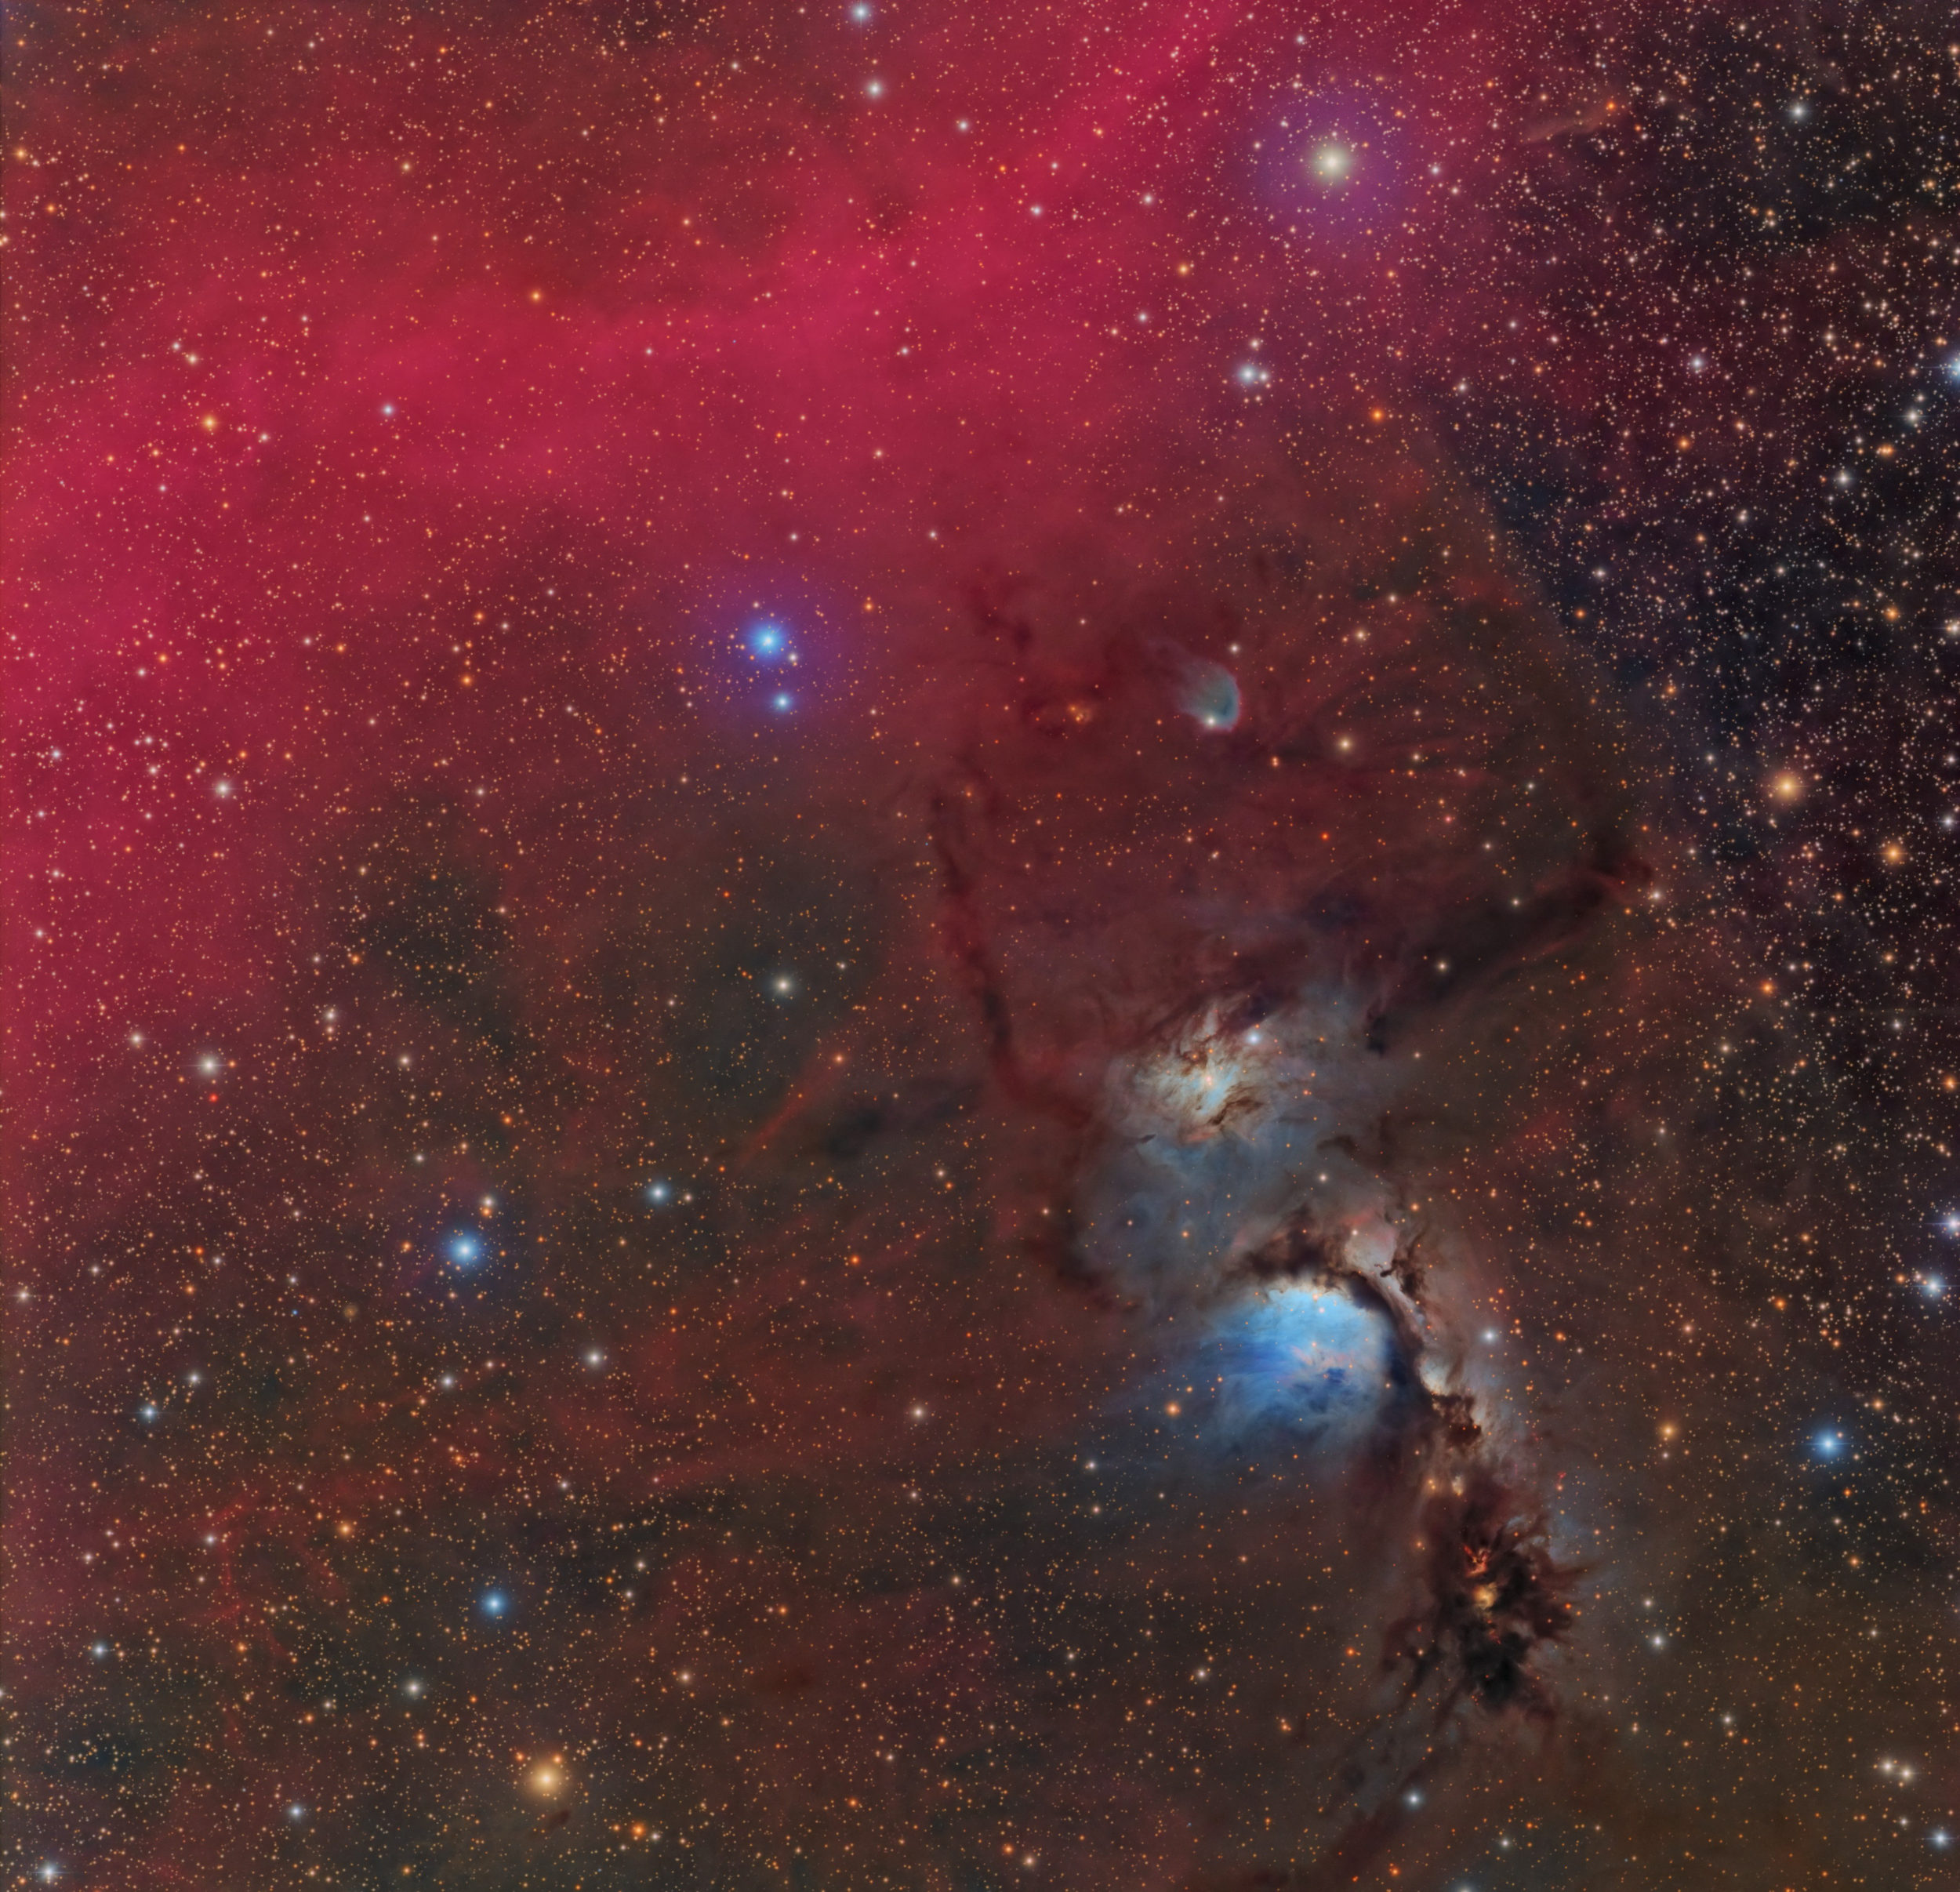 Messier 78, a reflection nebula located within the Orion constellation. This visible spectrum image shows the bright blue reflection nebula surrounded by a combination of red gas and brown dust known as Barnard's Loop. Photo Credit: Connor Matherne, LSU.